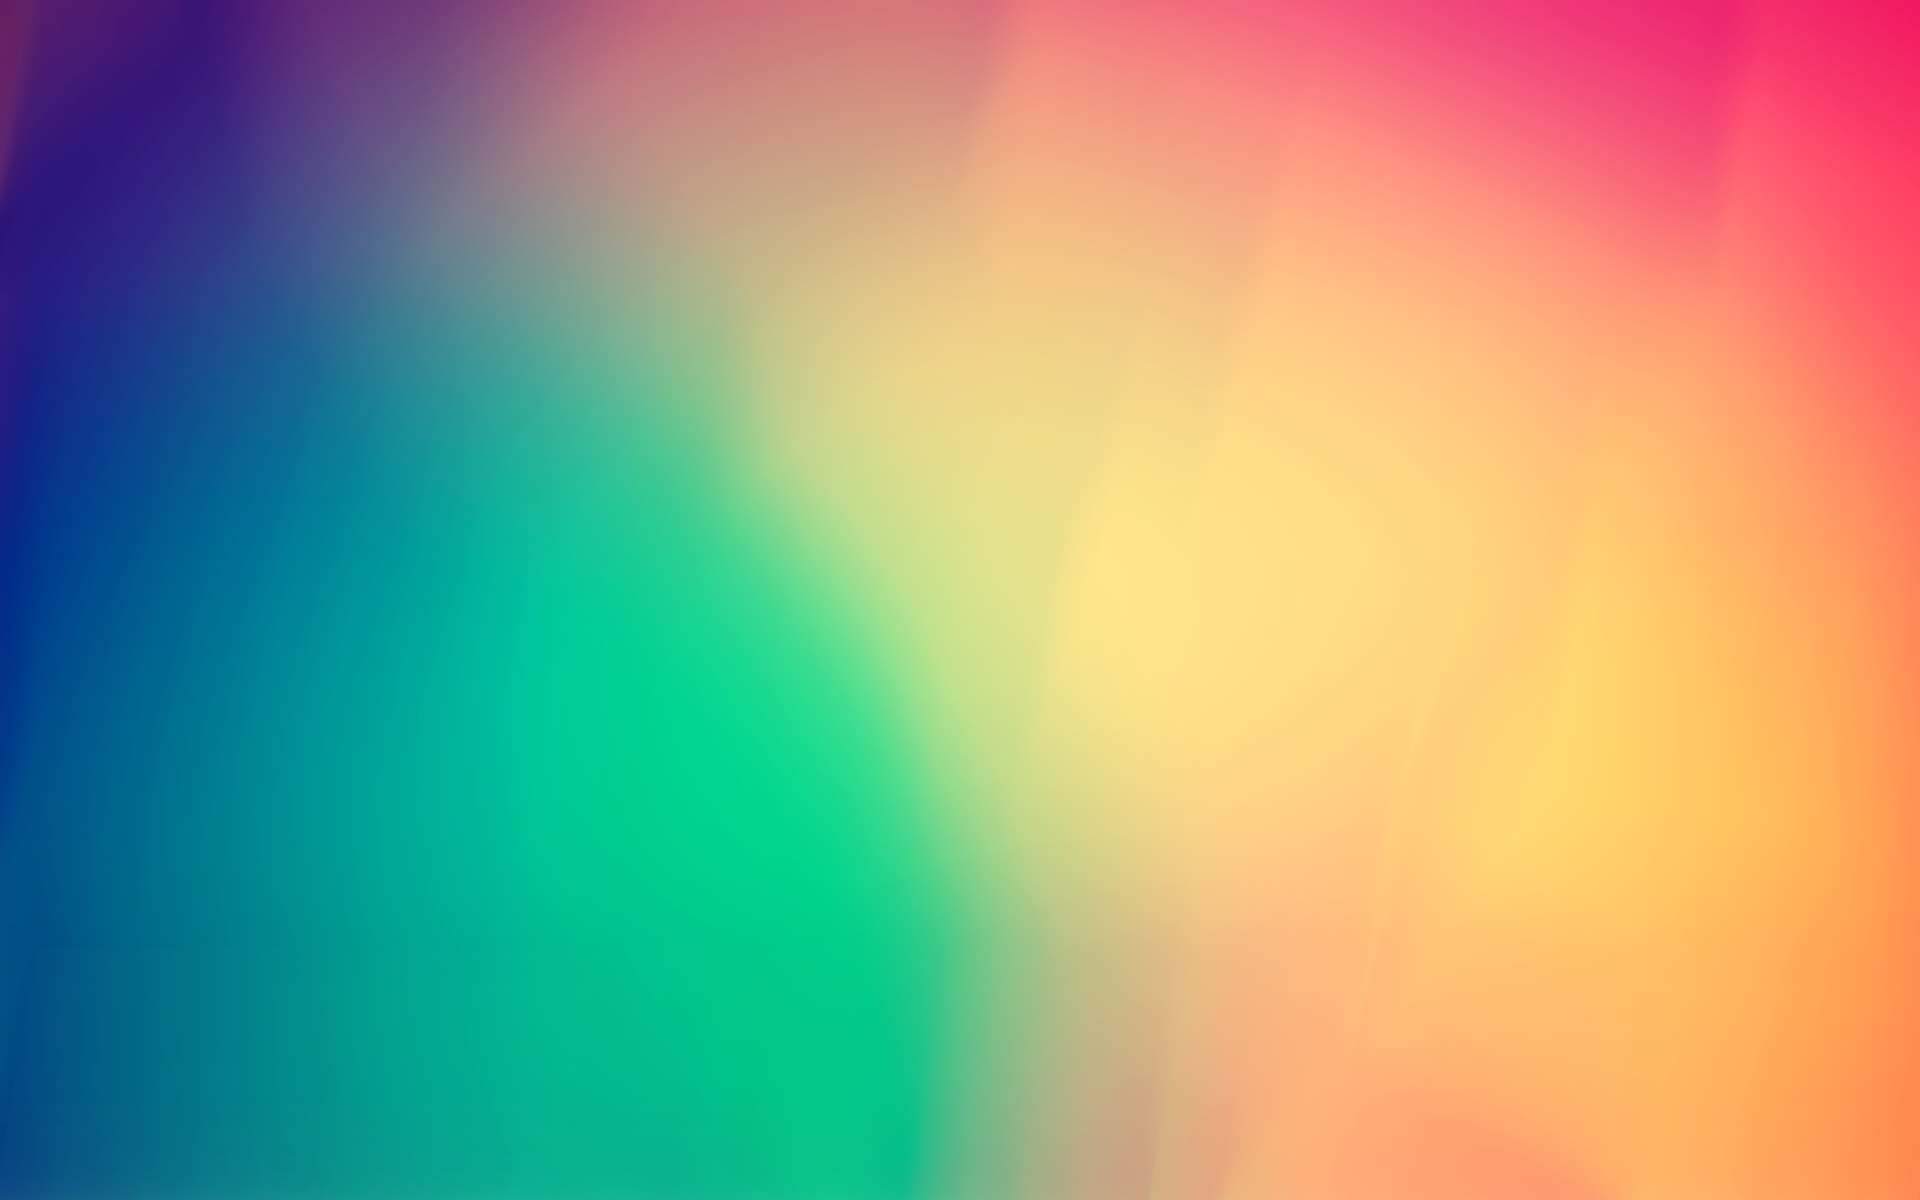 Gradient Blur Wallpaper Solid Color Backgrounds Photoshop Plugins Hd Cool Wallpapers